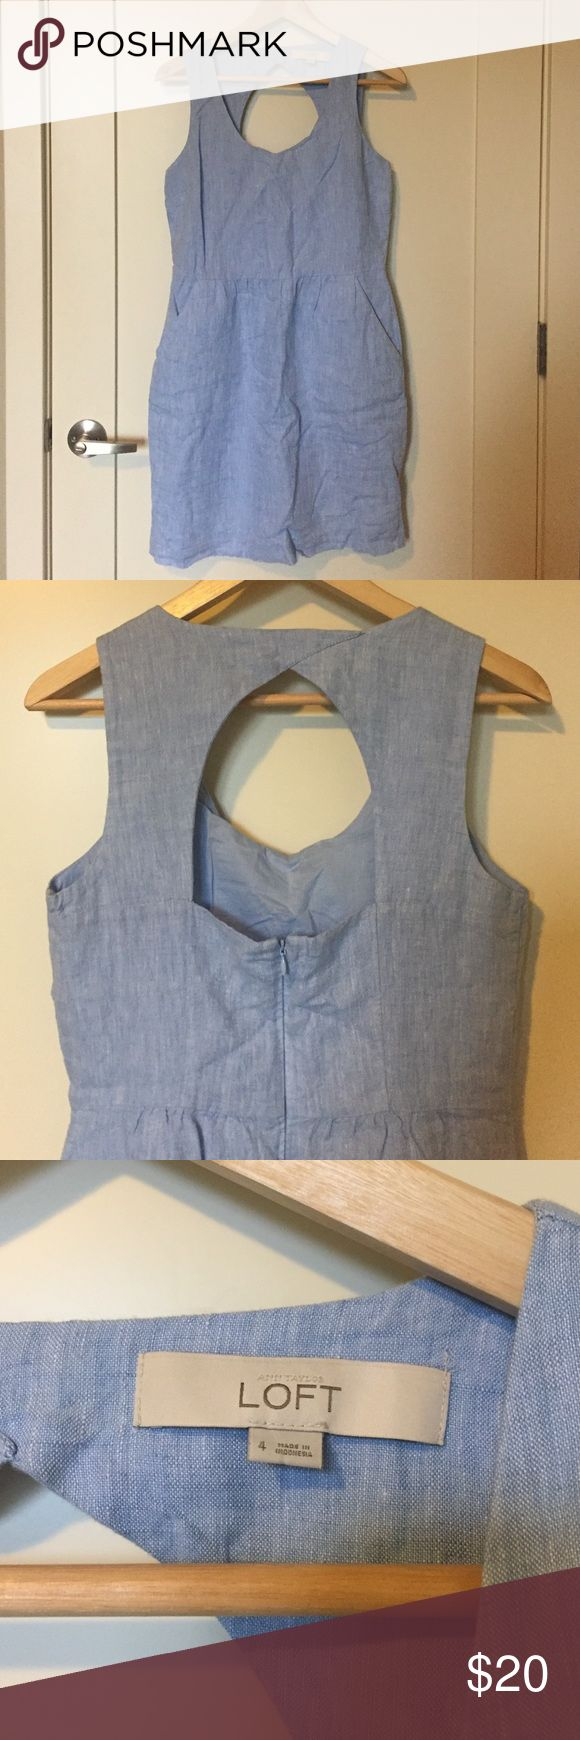 Chambray Loft dress This dress is a baby blue linen chambray, with open back. It has pockets and zips up the back. It was only worn once! LOFT Dresses Mini